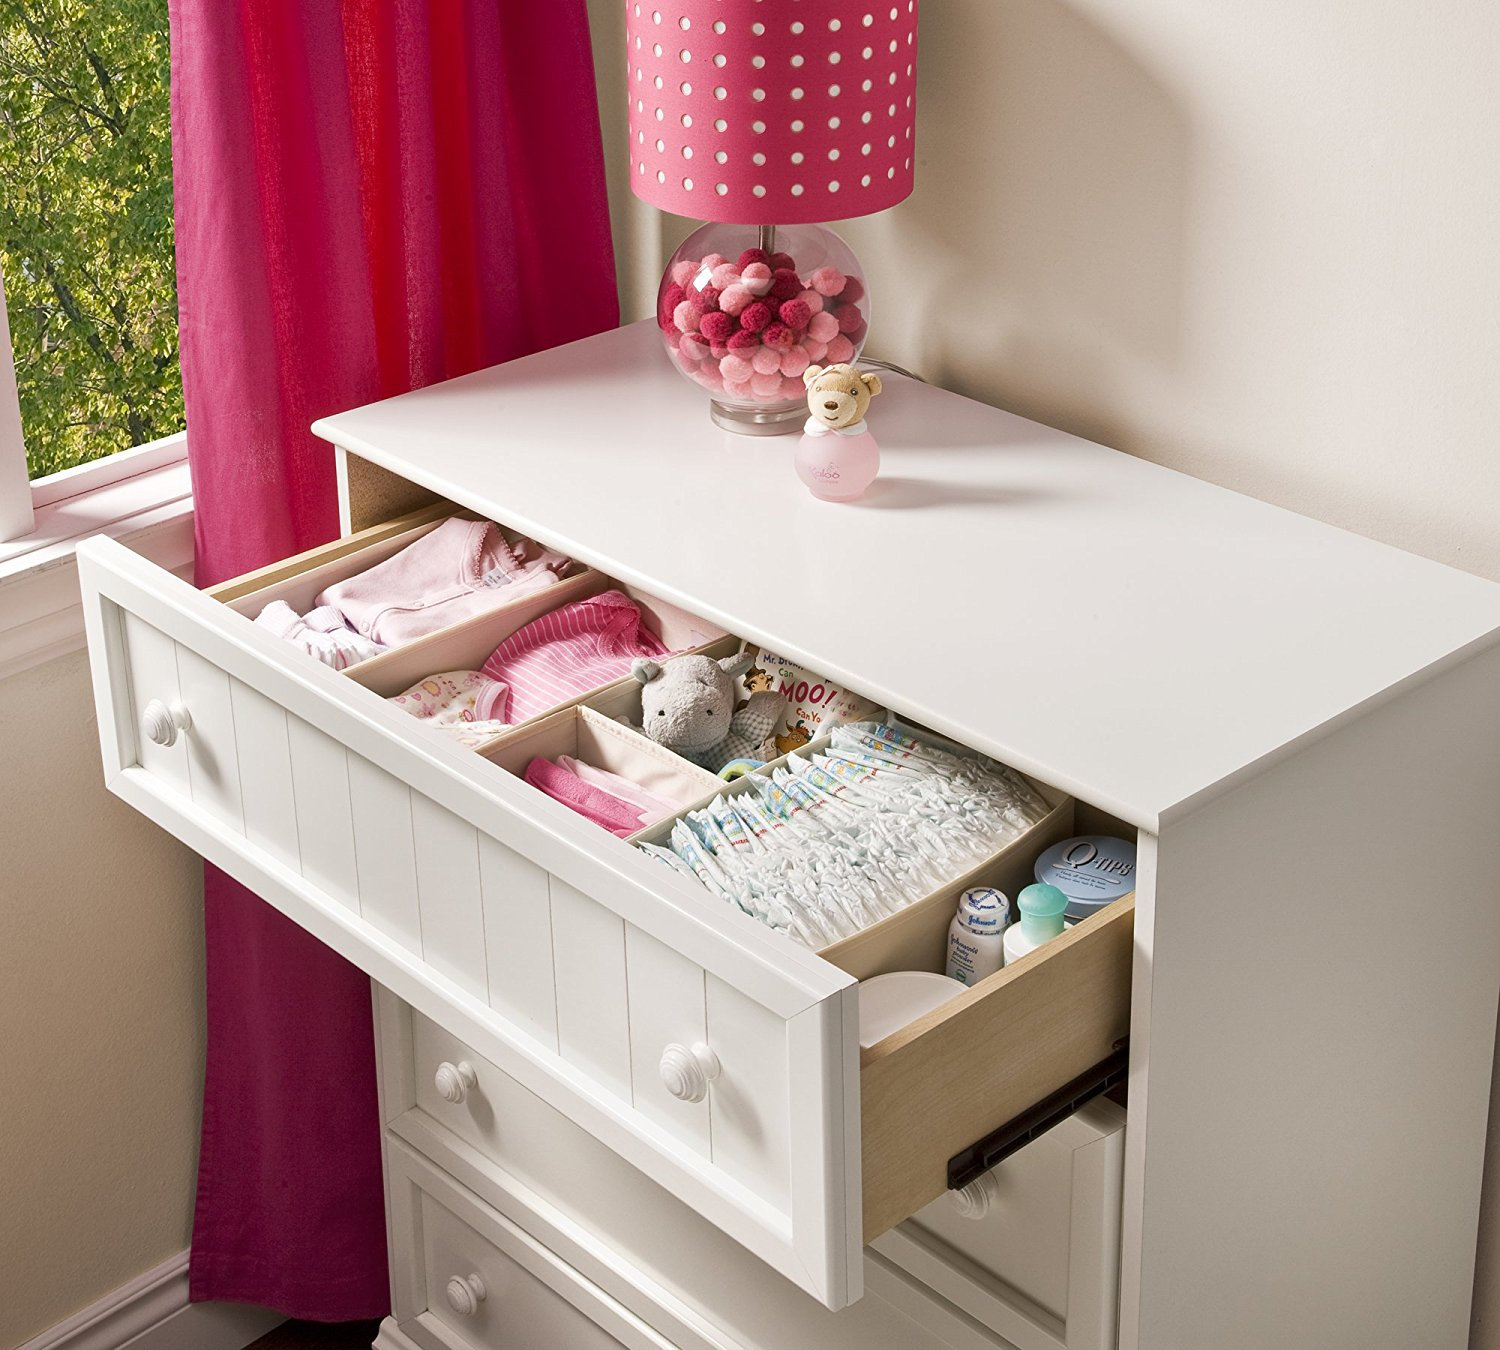 Picture of: Organizer With Drawers